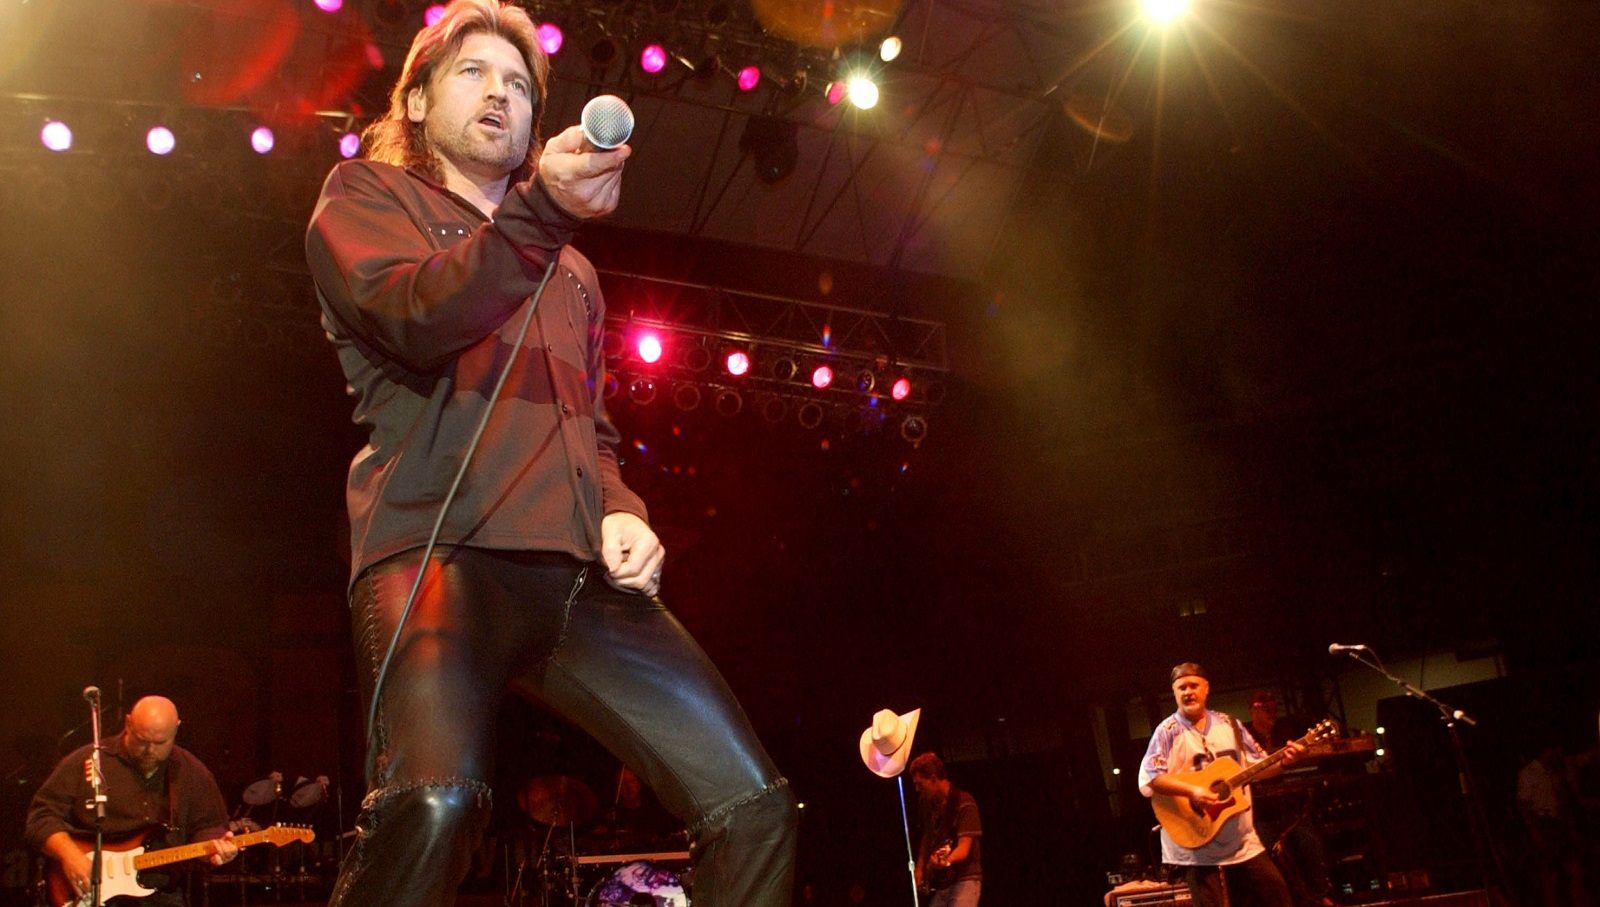 Billy Ray Cyrus qualifies as a one-hit wonder musician. See who else Jeff Miers slots in that category. (Getty Images)